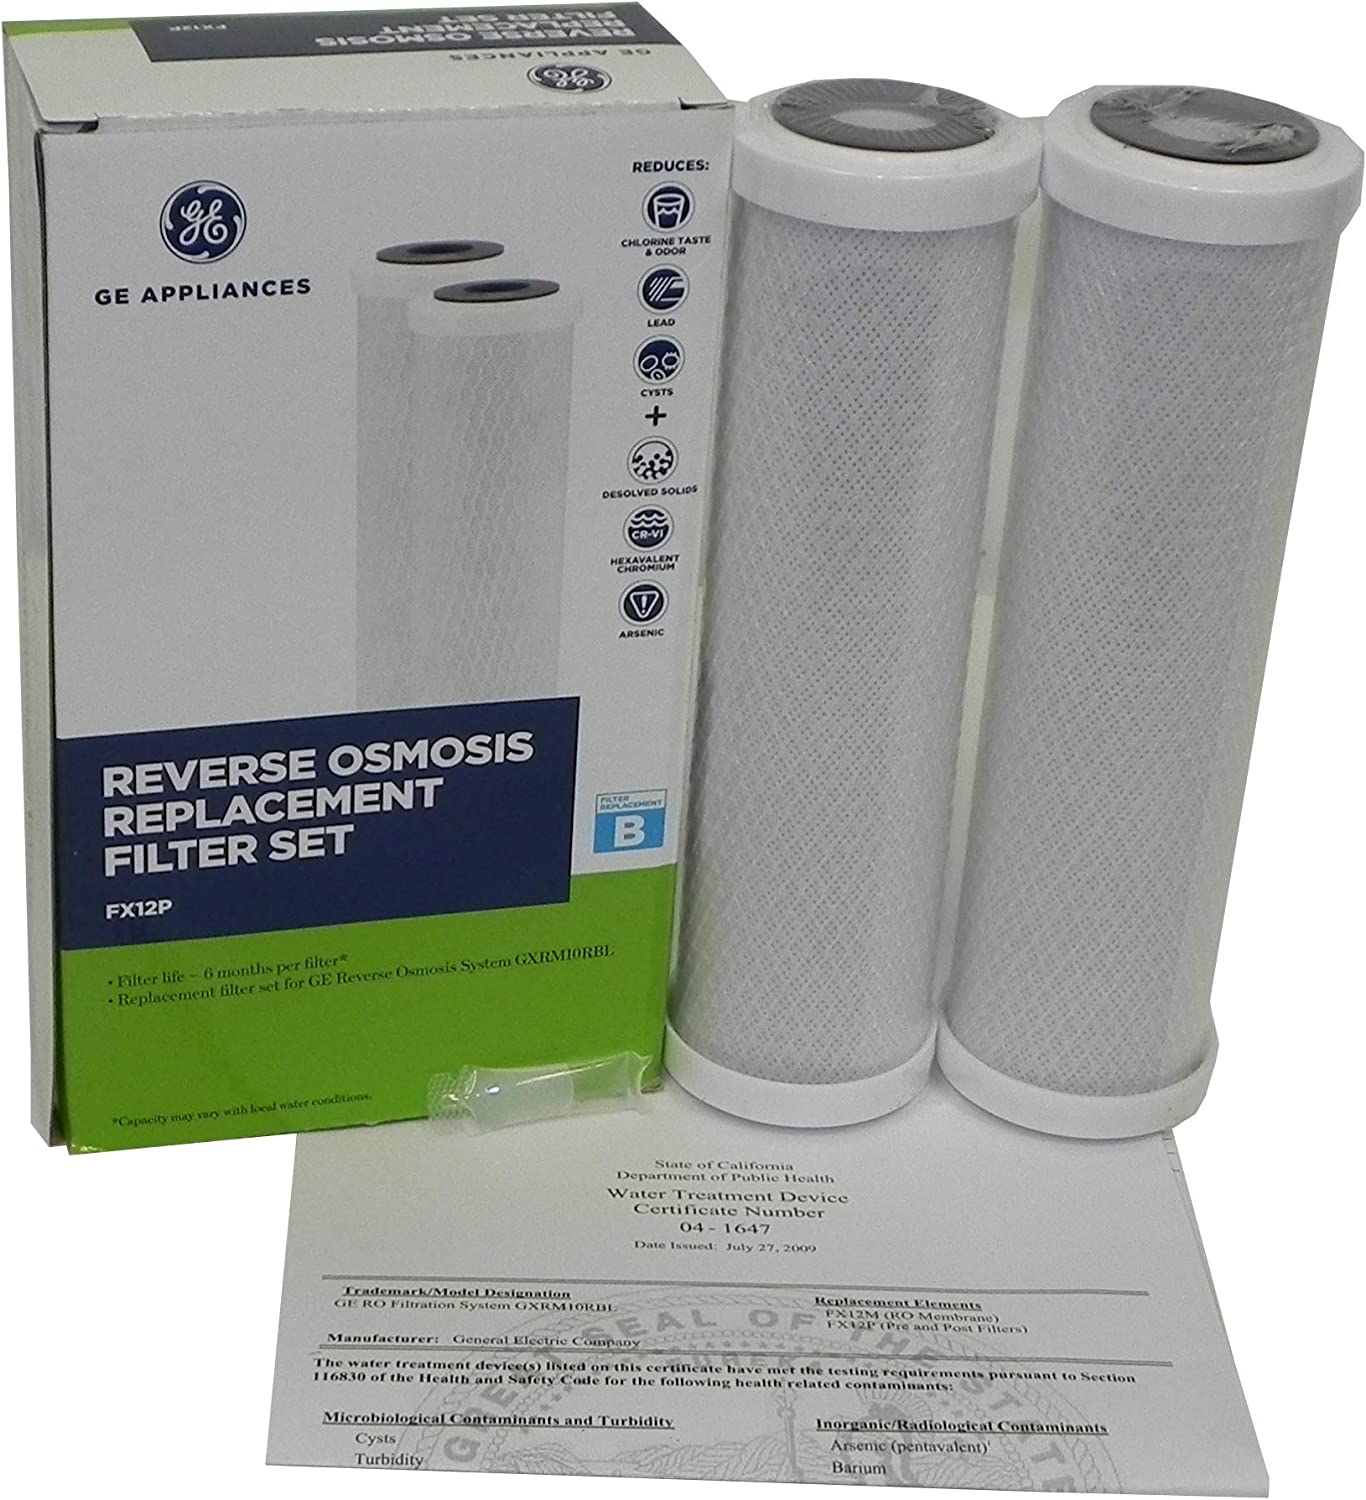 Genuine GE FX12P Replacement Filters for GE GXRM10RBL RO Systems Includes Retail Boxes, Silicon O-Ring Lubricant, Instruction, Certificate, 1 Box with 2 Filters Inside, Also for GE PNRV12 GXRV10